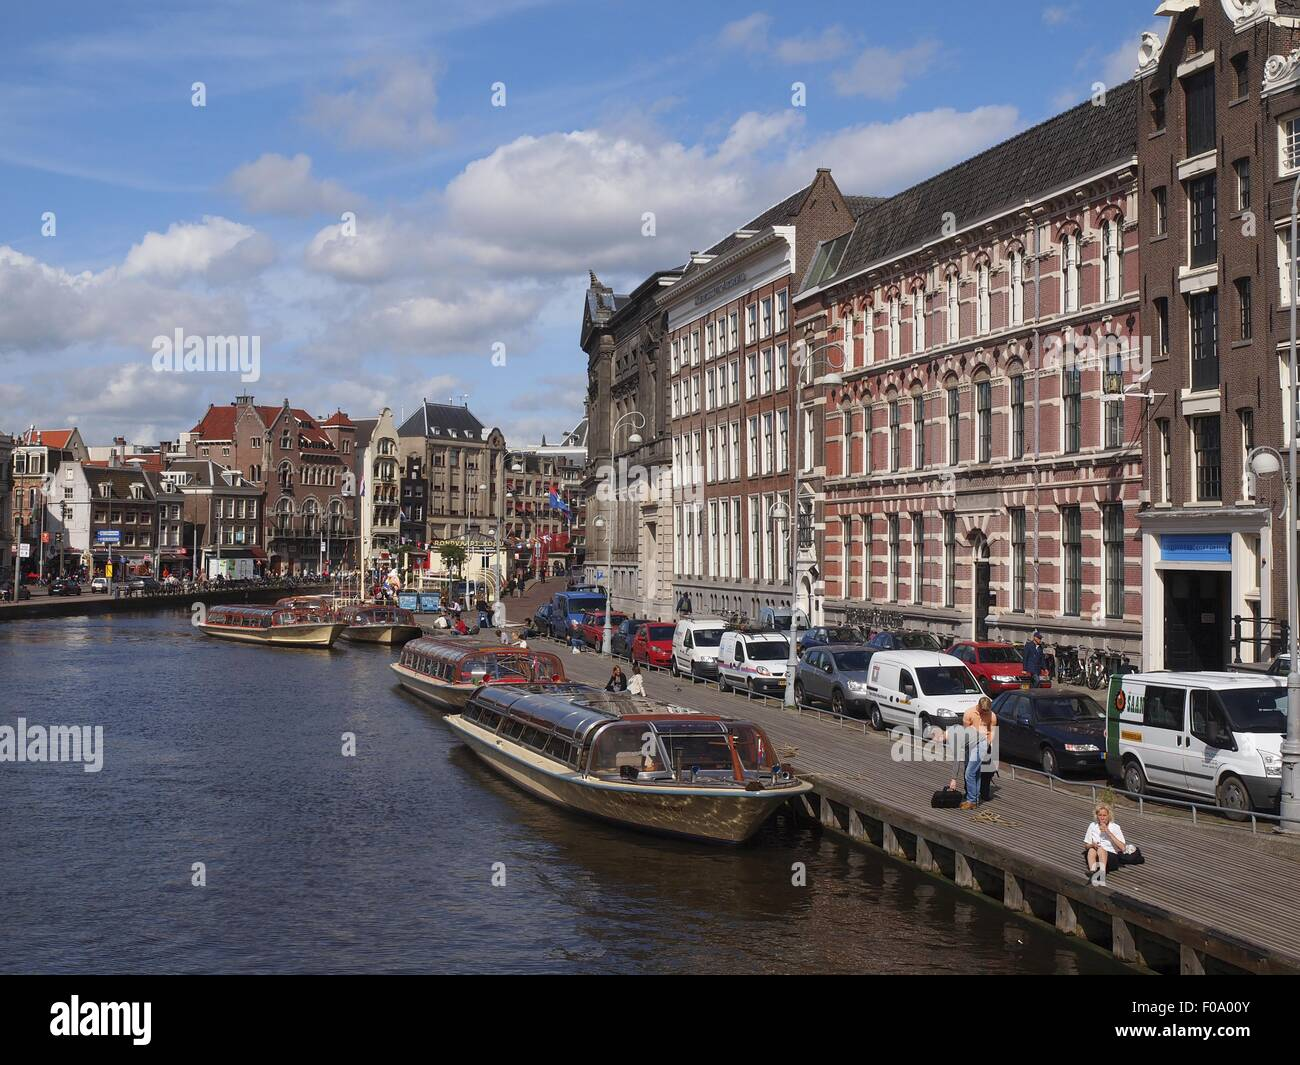 View of canal houses and ferryboats in canal Amsterdam at Nieuwmarkt, Netherlands - Stock Image